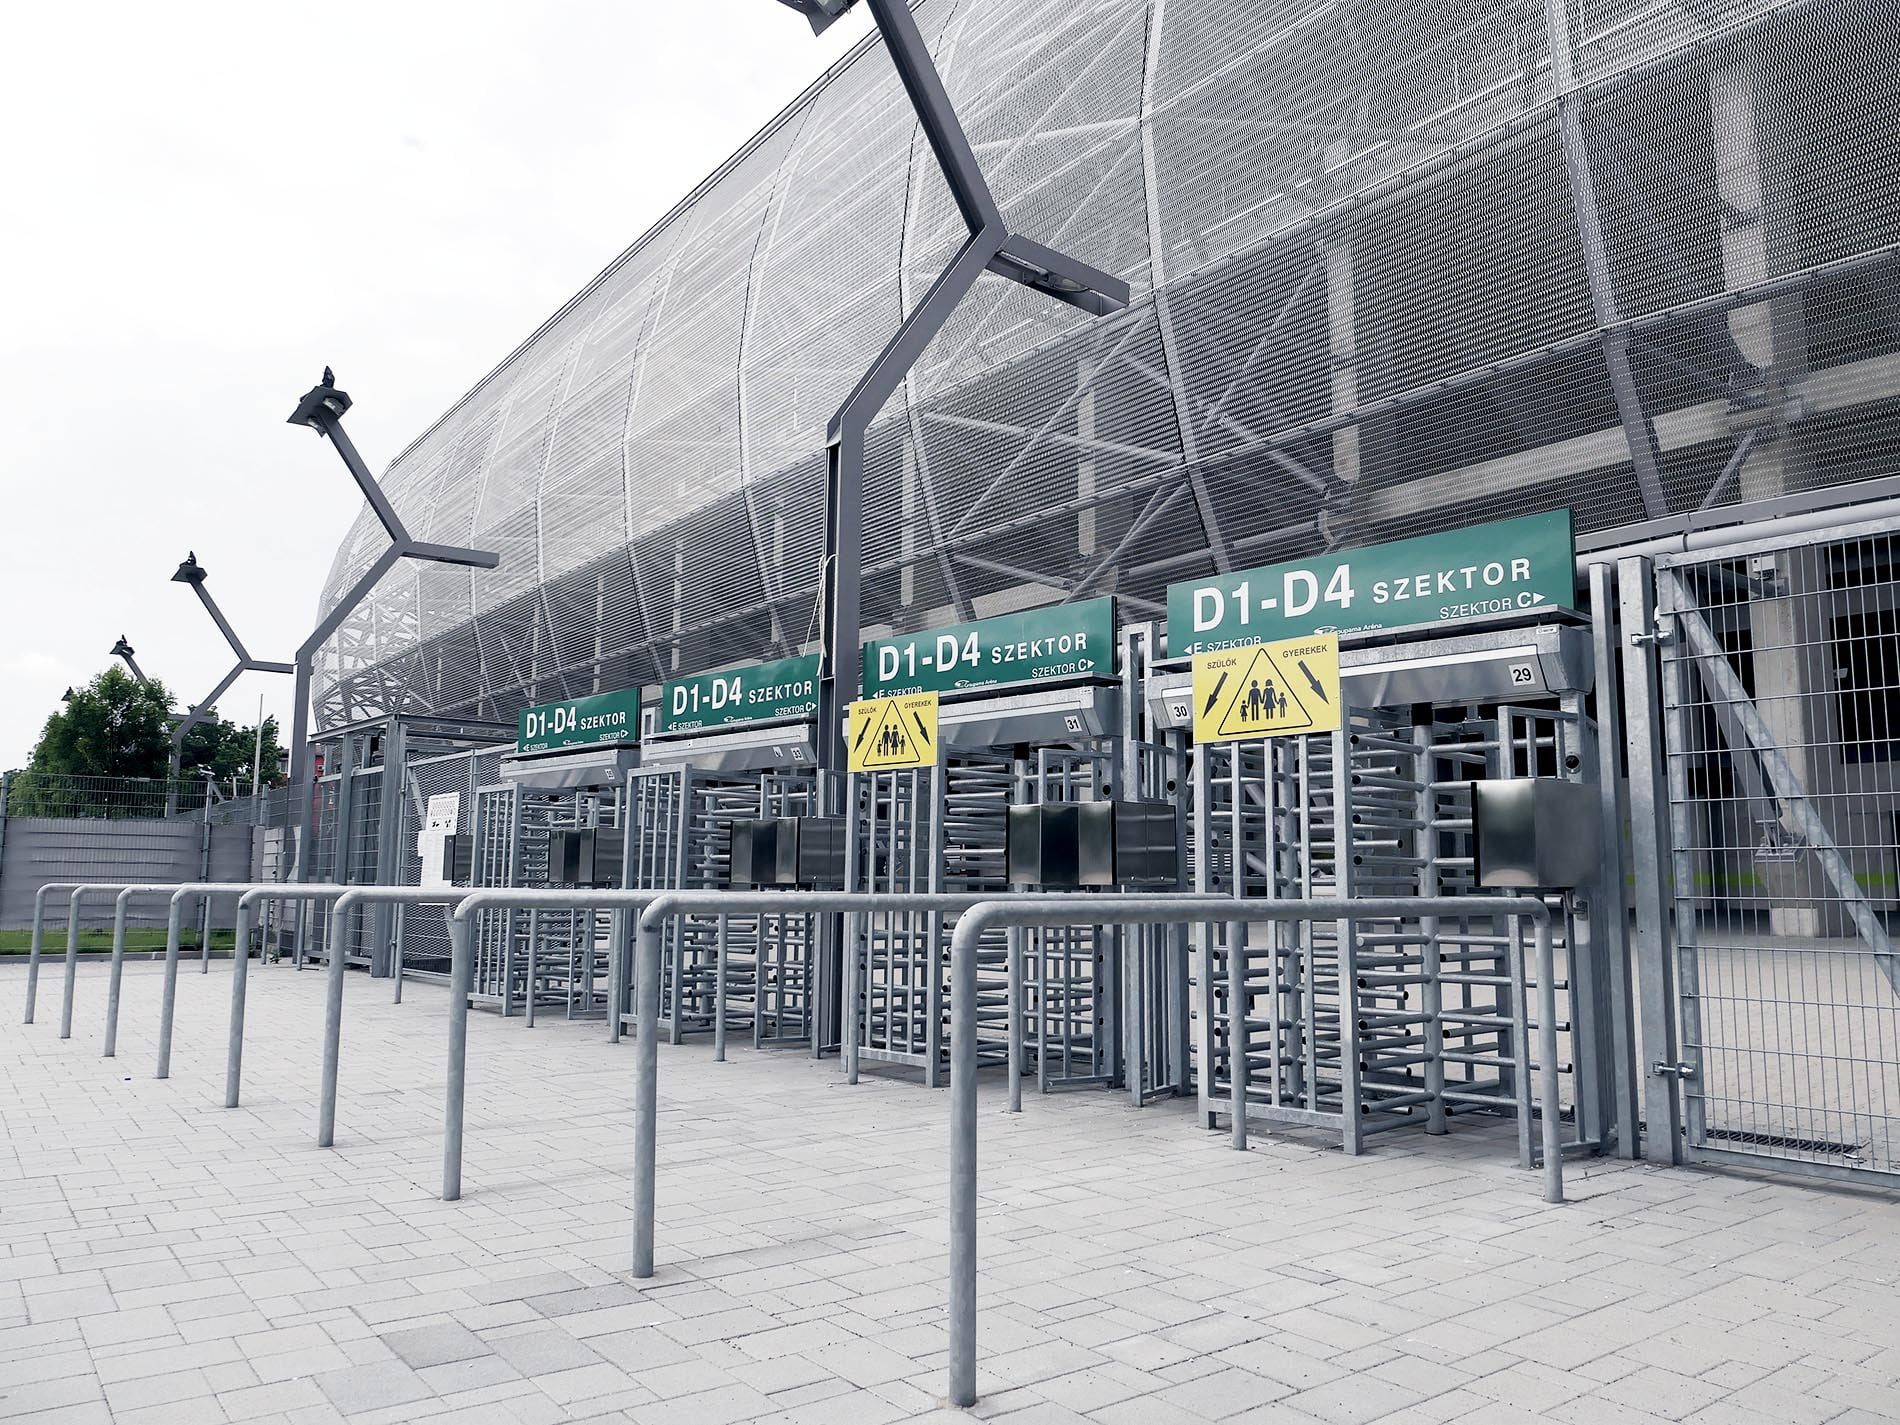 Elements of the infrastructure at spectator facilities